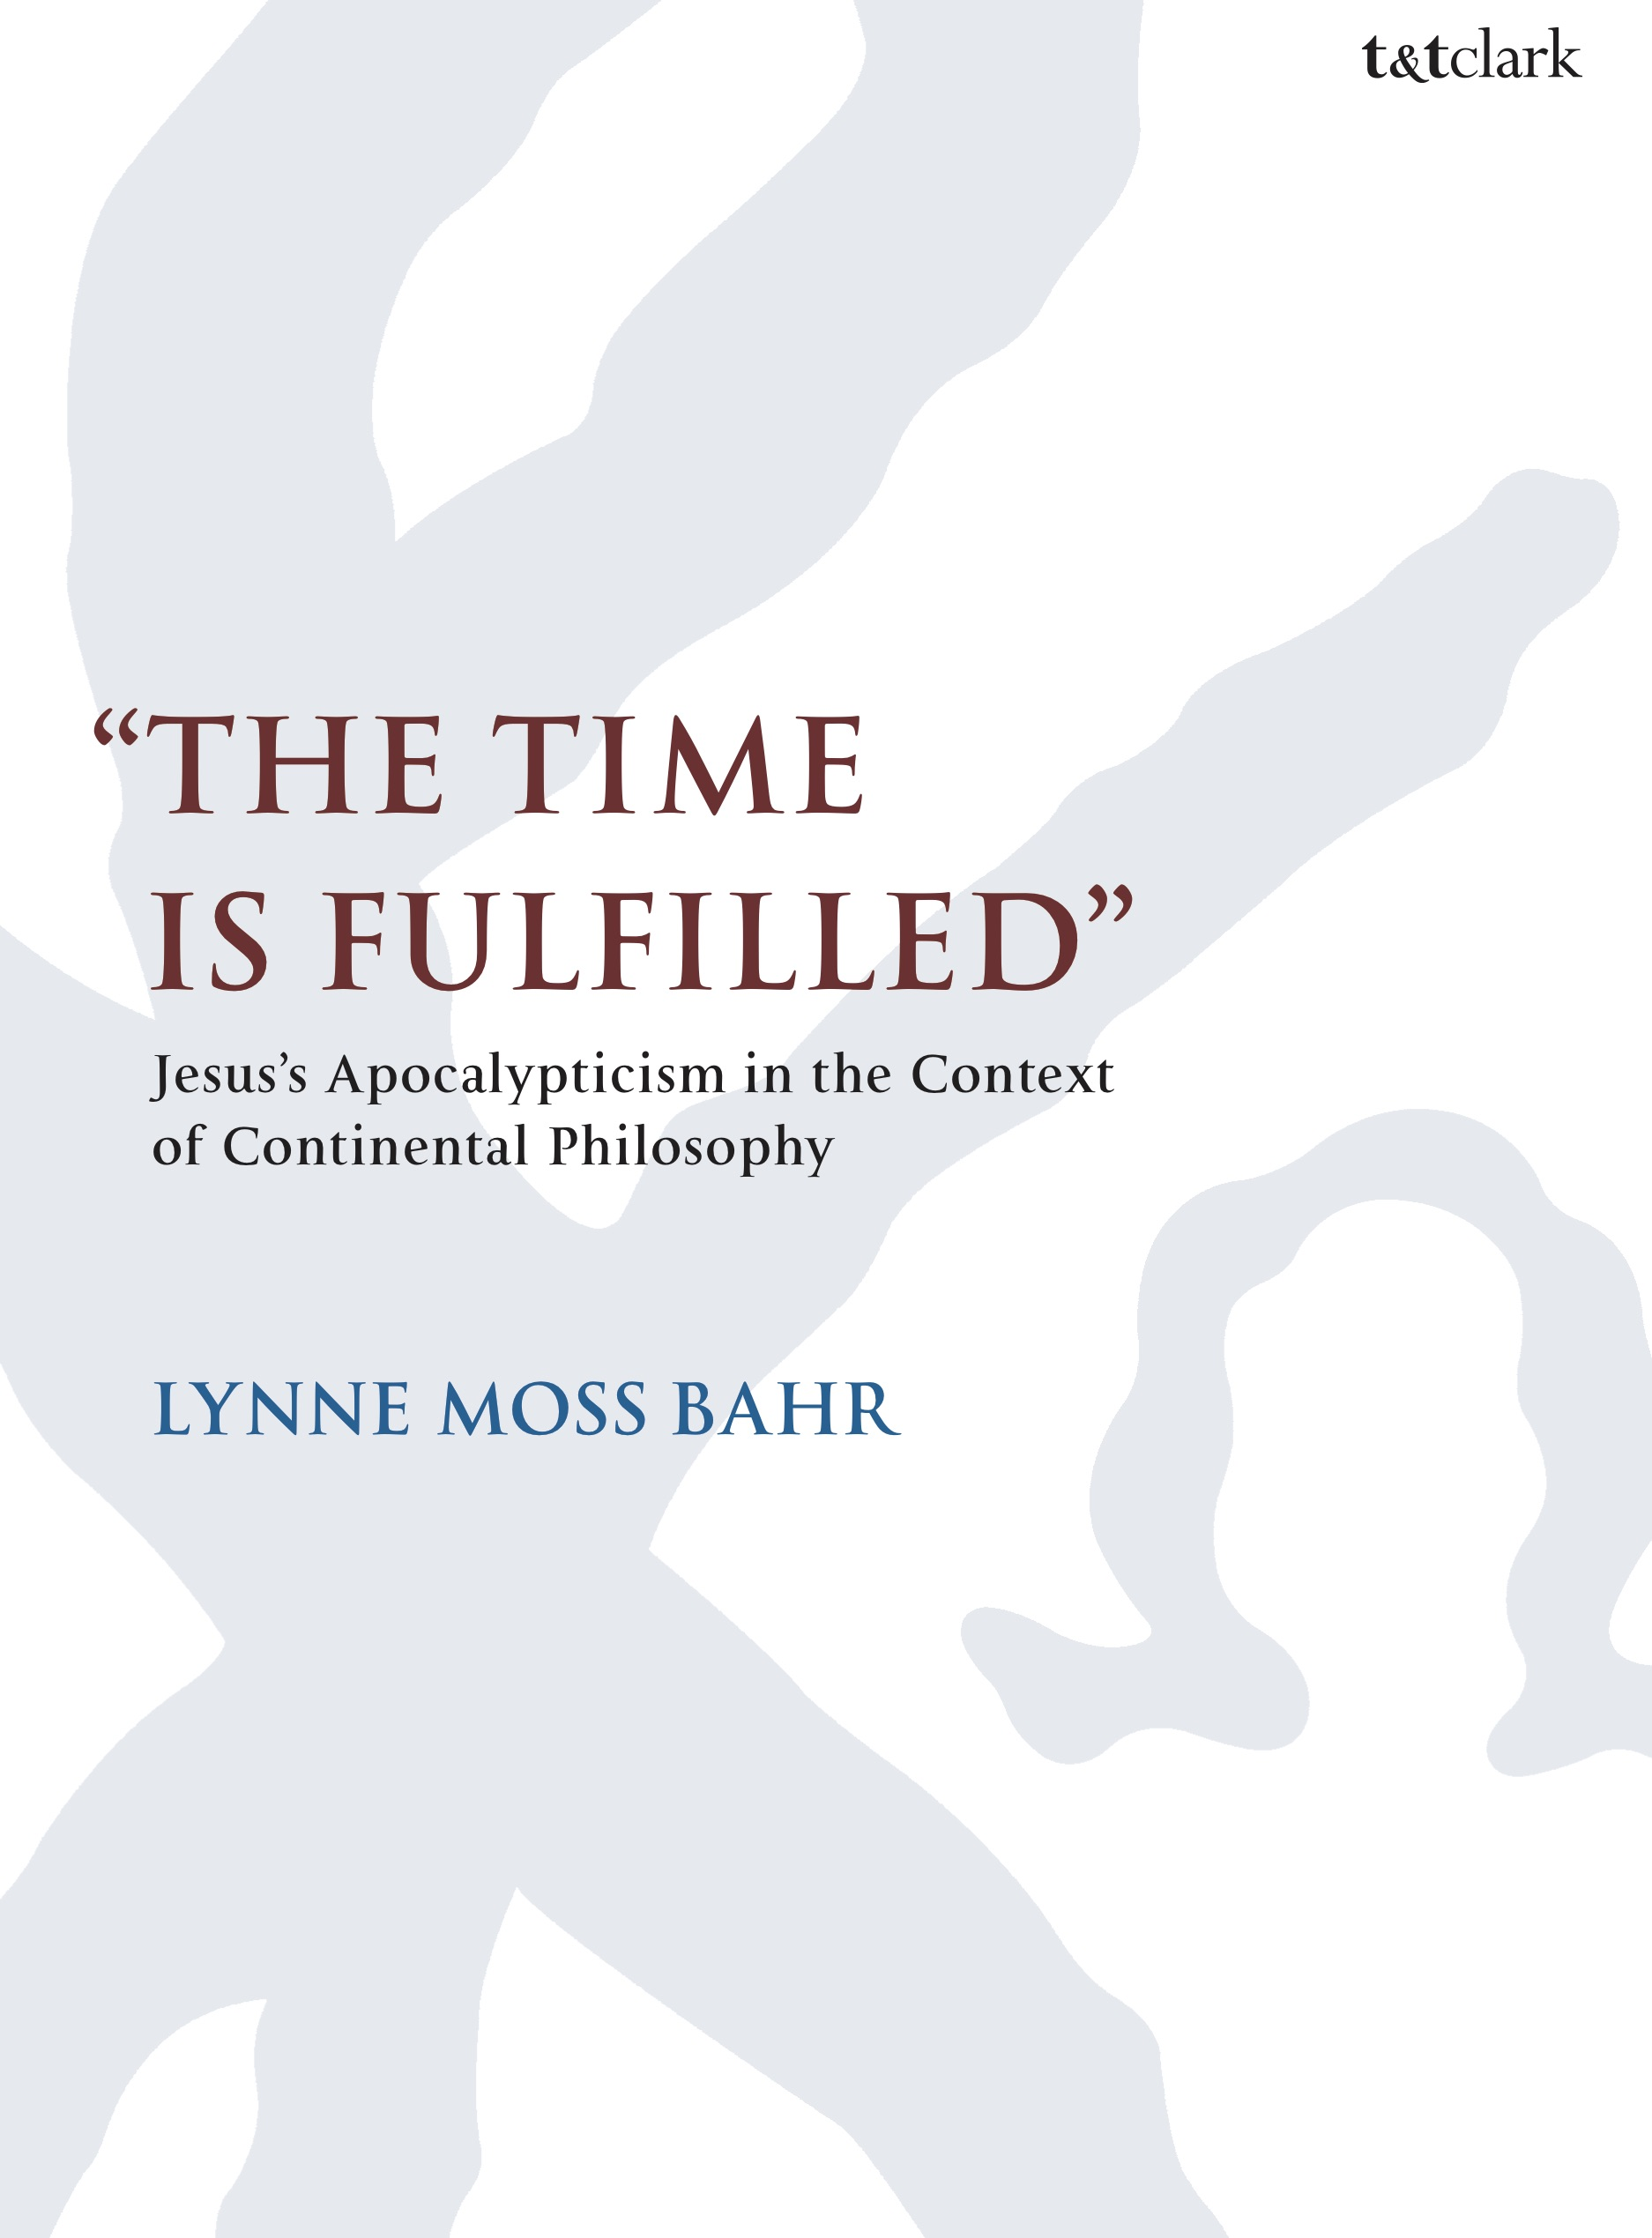 The Time is Fulfilled cover proof.jpg